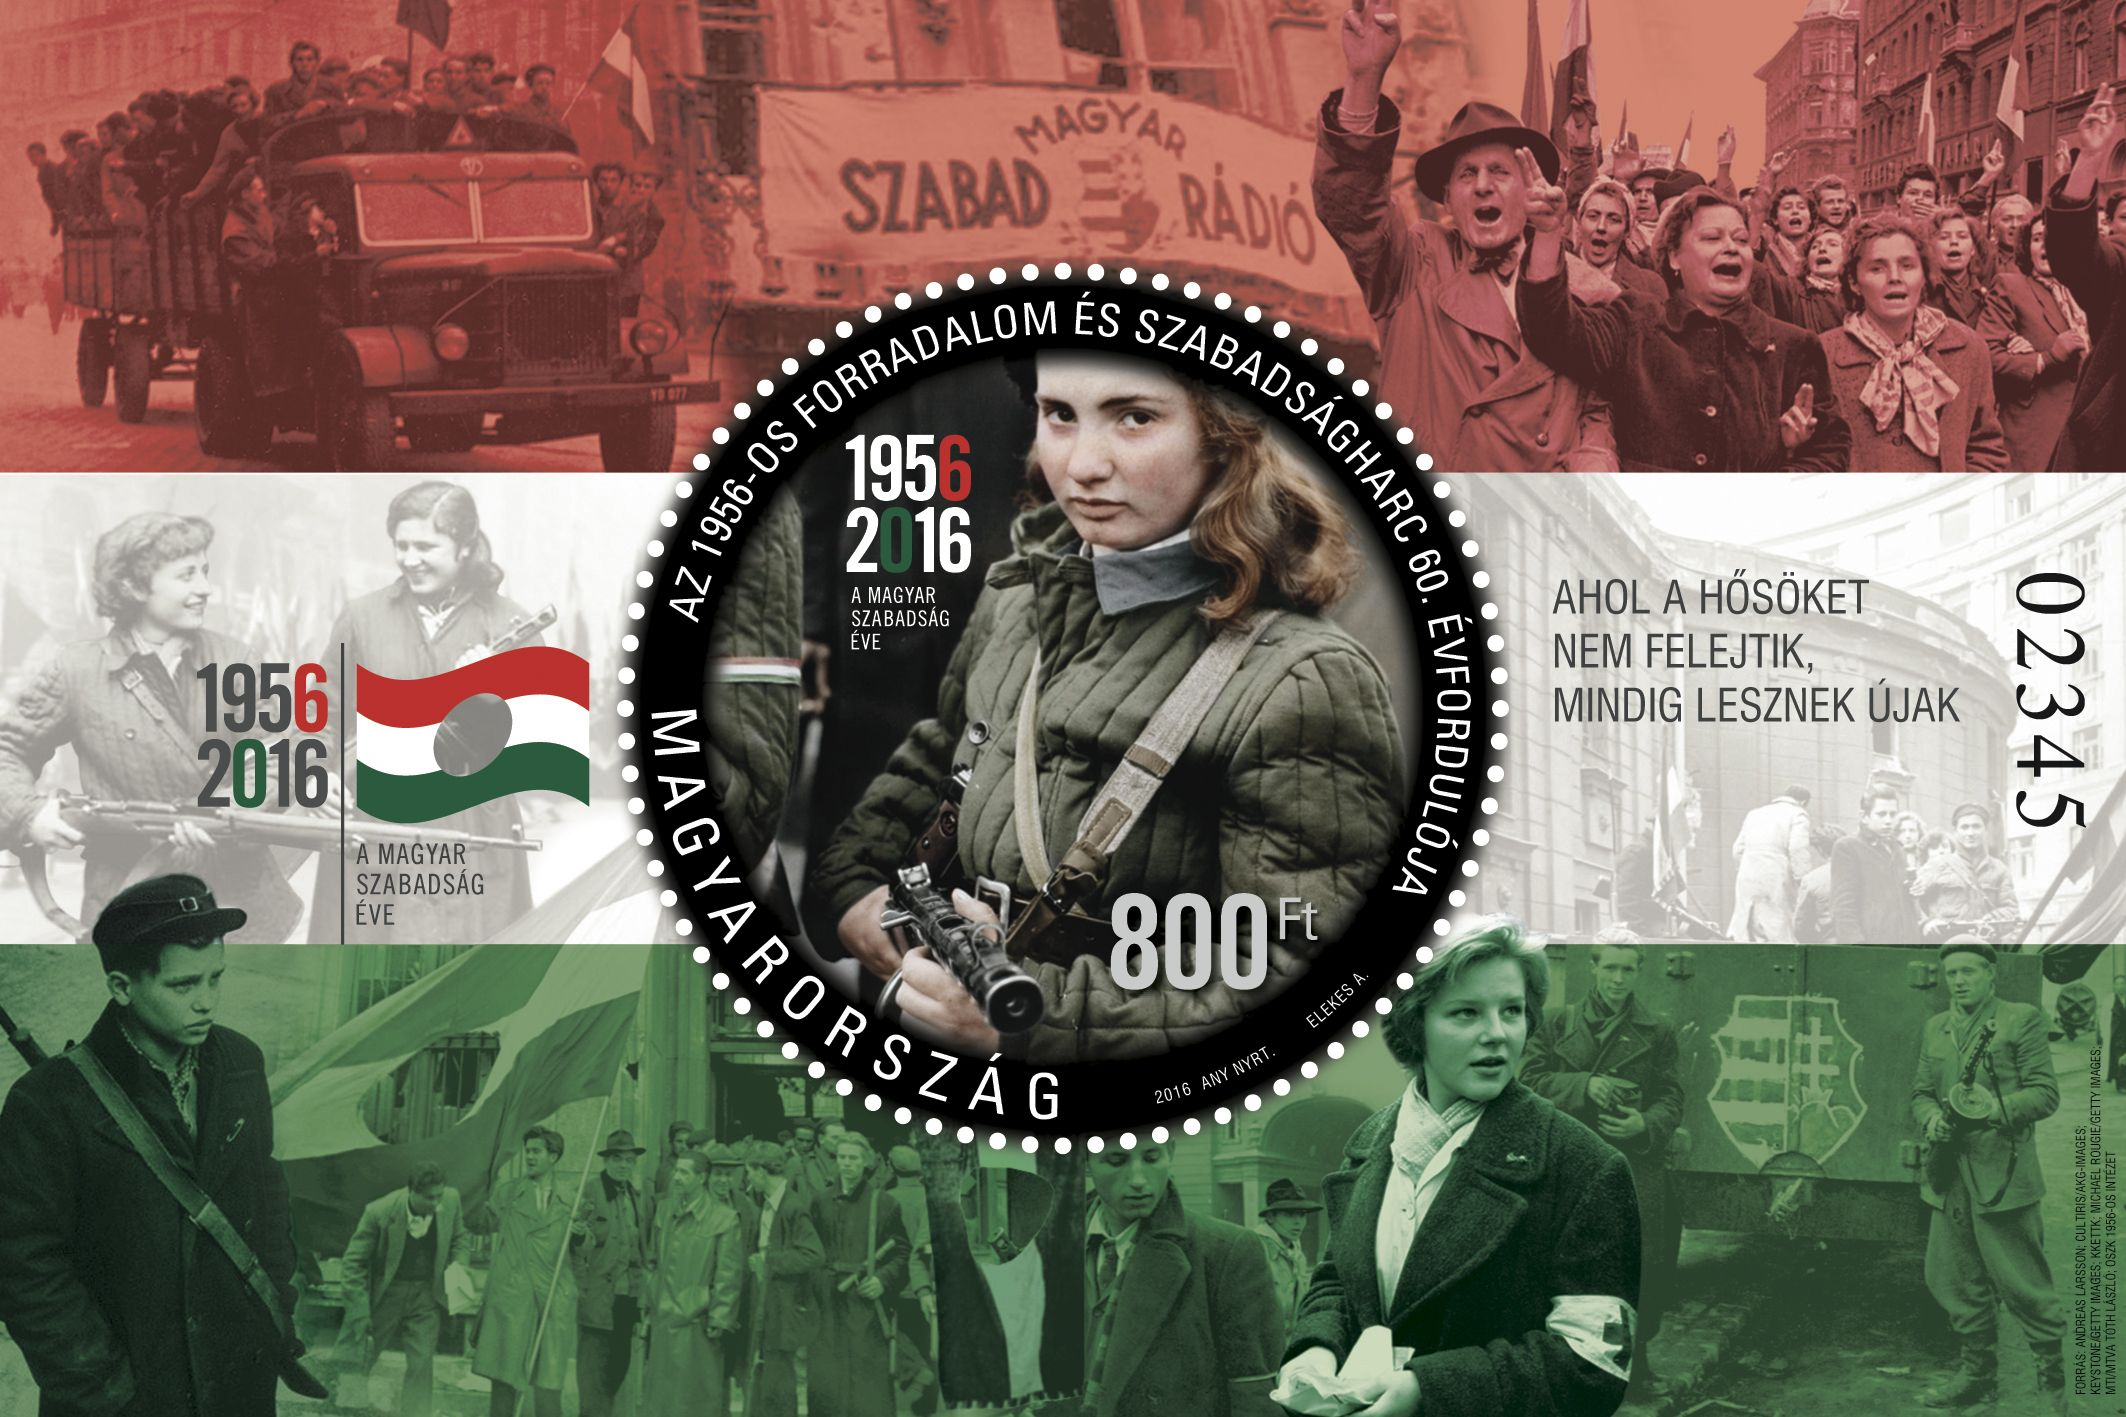 1956 Hungarian Revolution and Freedom Fight